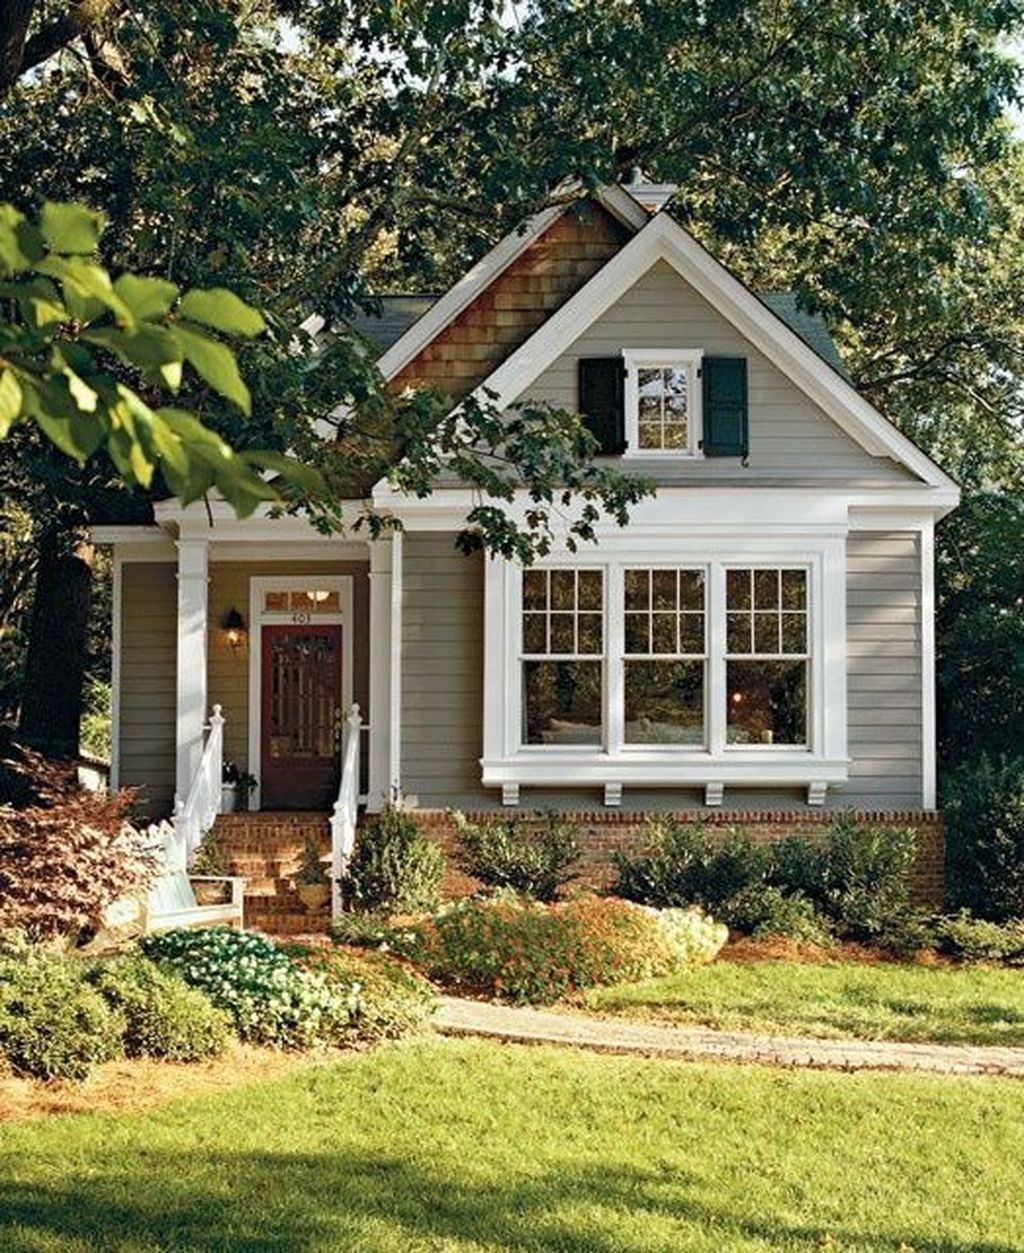 20 Charming Small Cottage House Exterior Ideas Trendecora